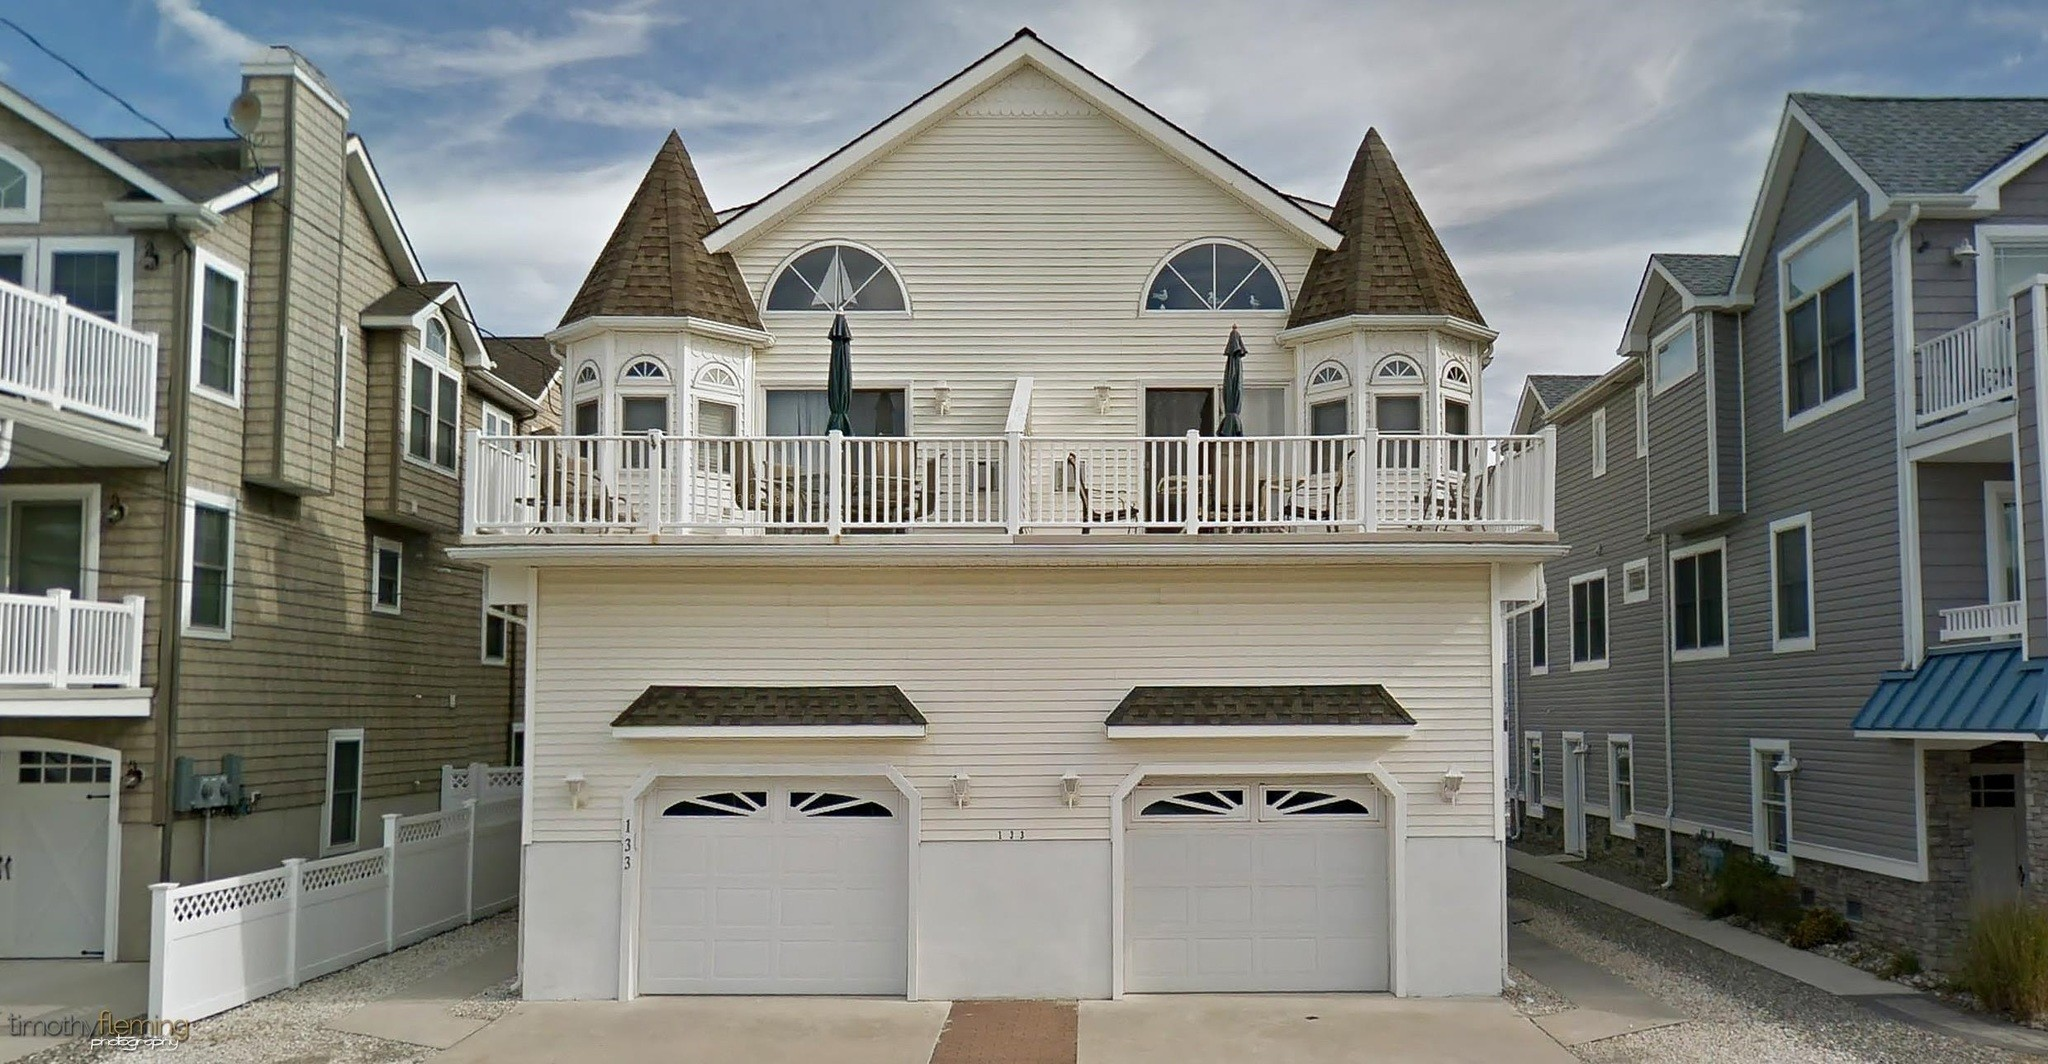 3-Story Townhouse In Sea Isle City